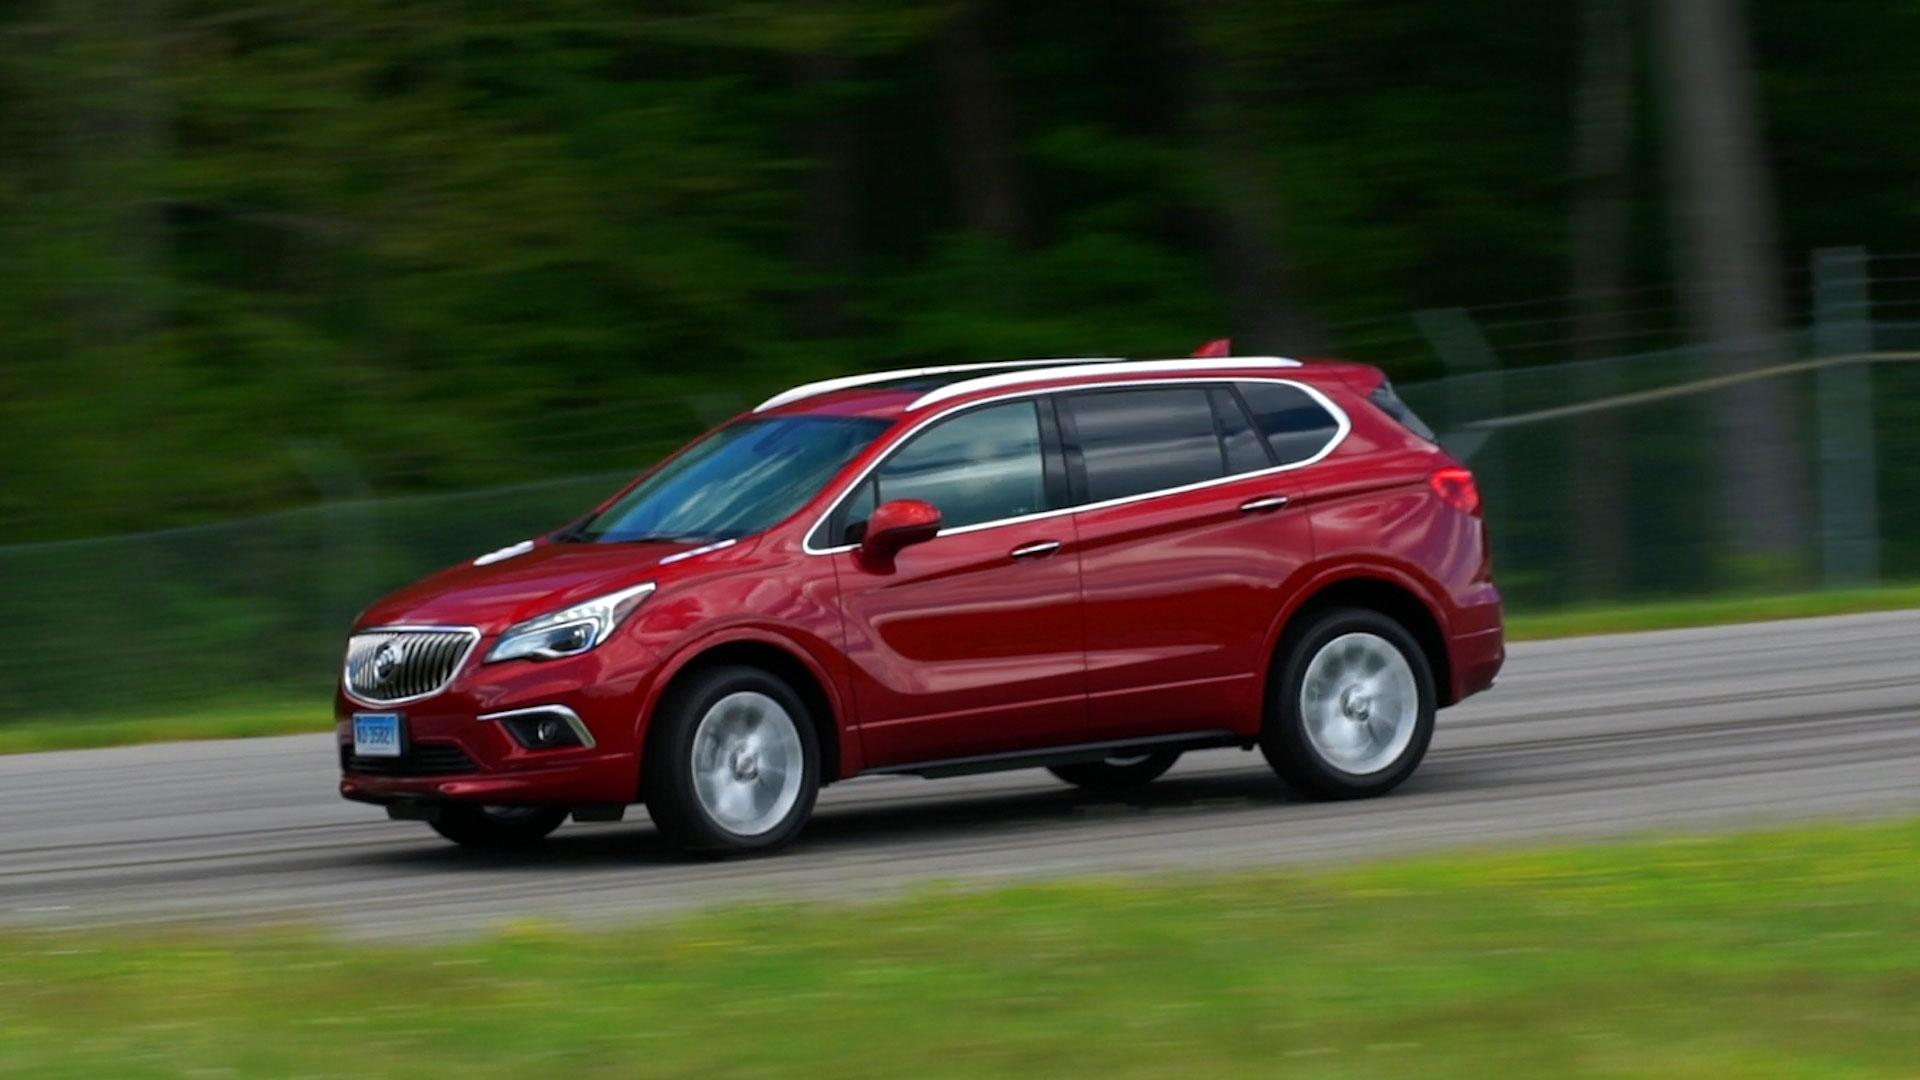 More from consumer reports 2016 chevrolet spark review new 2016 buick envision suv proves disappointing